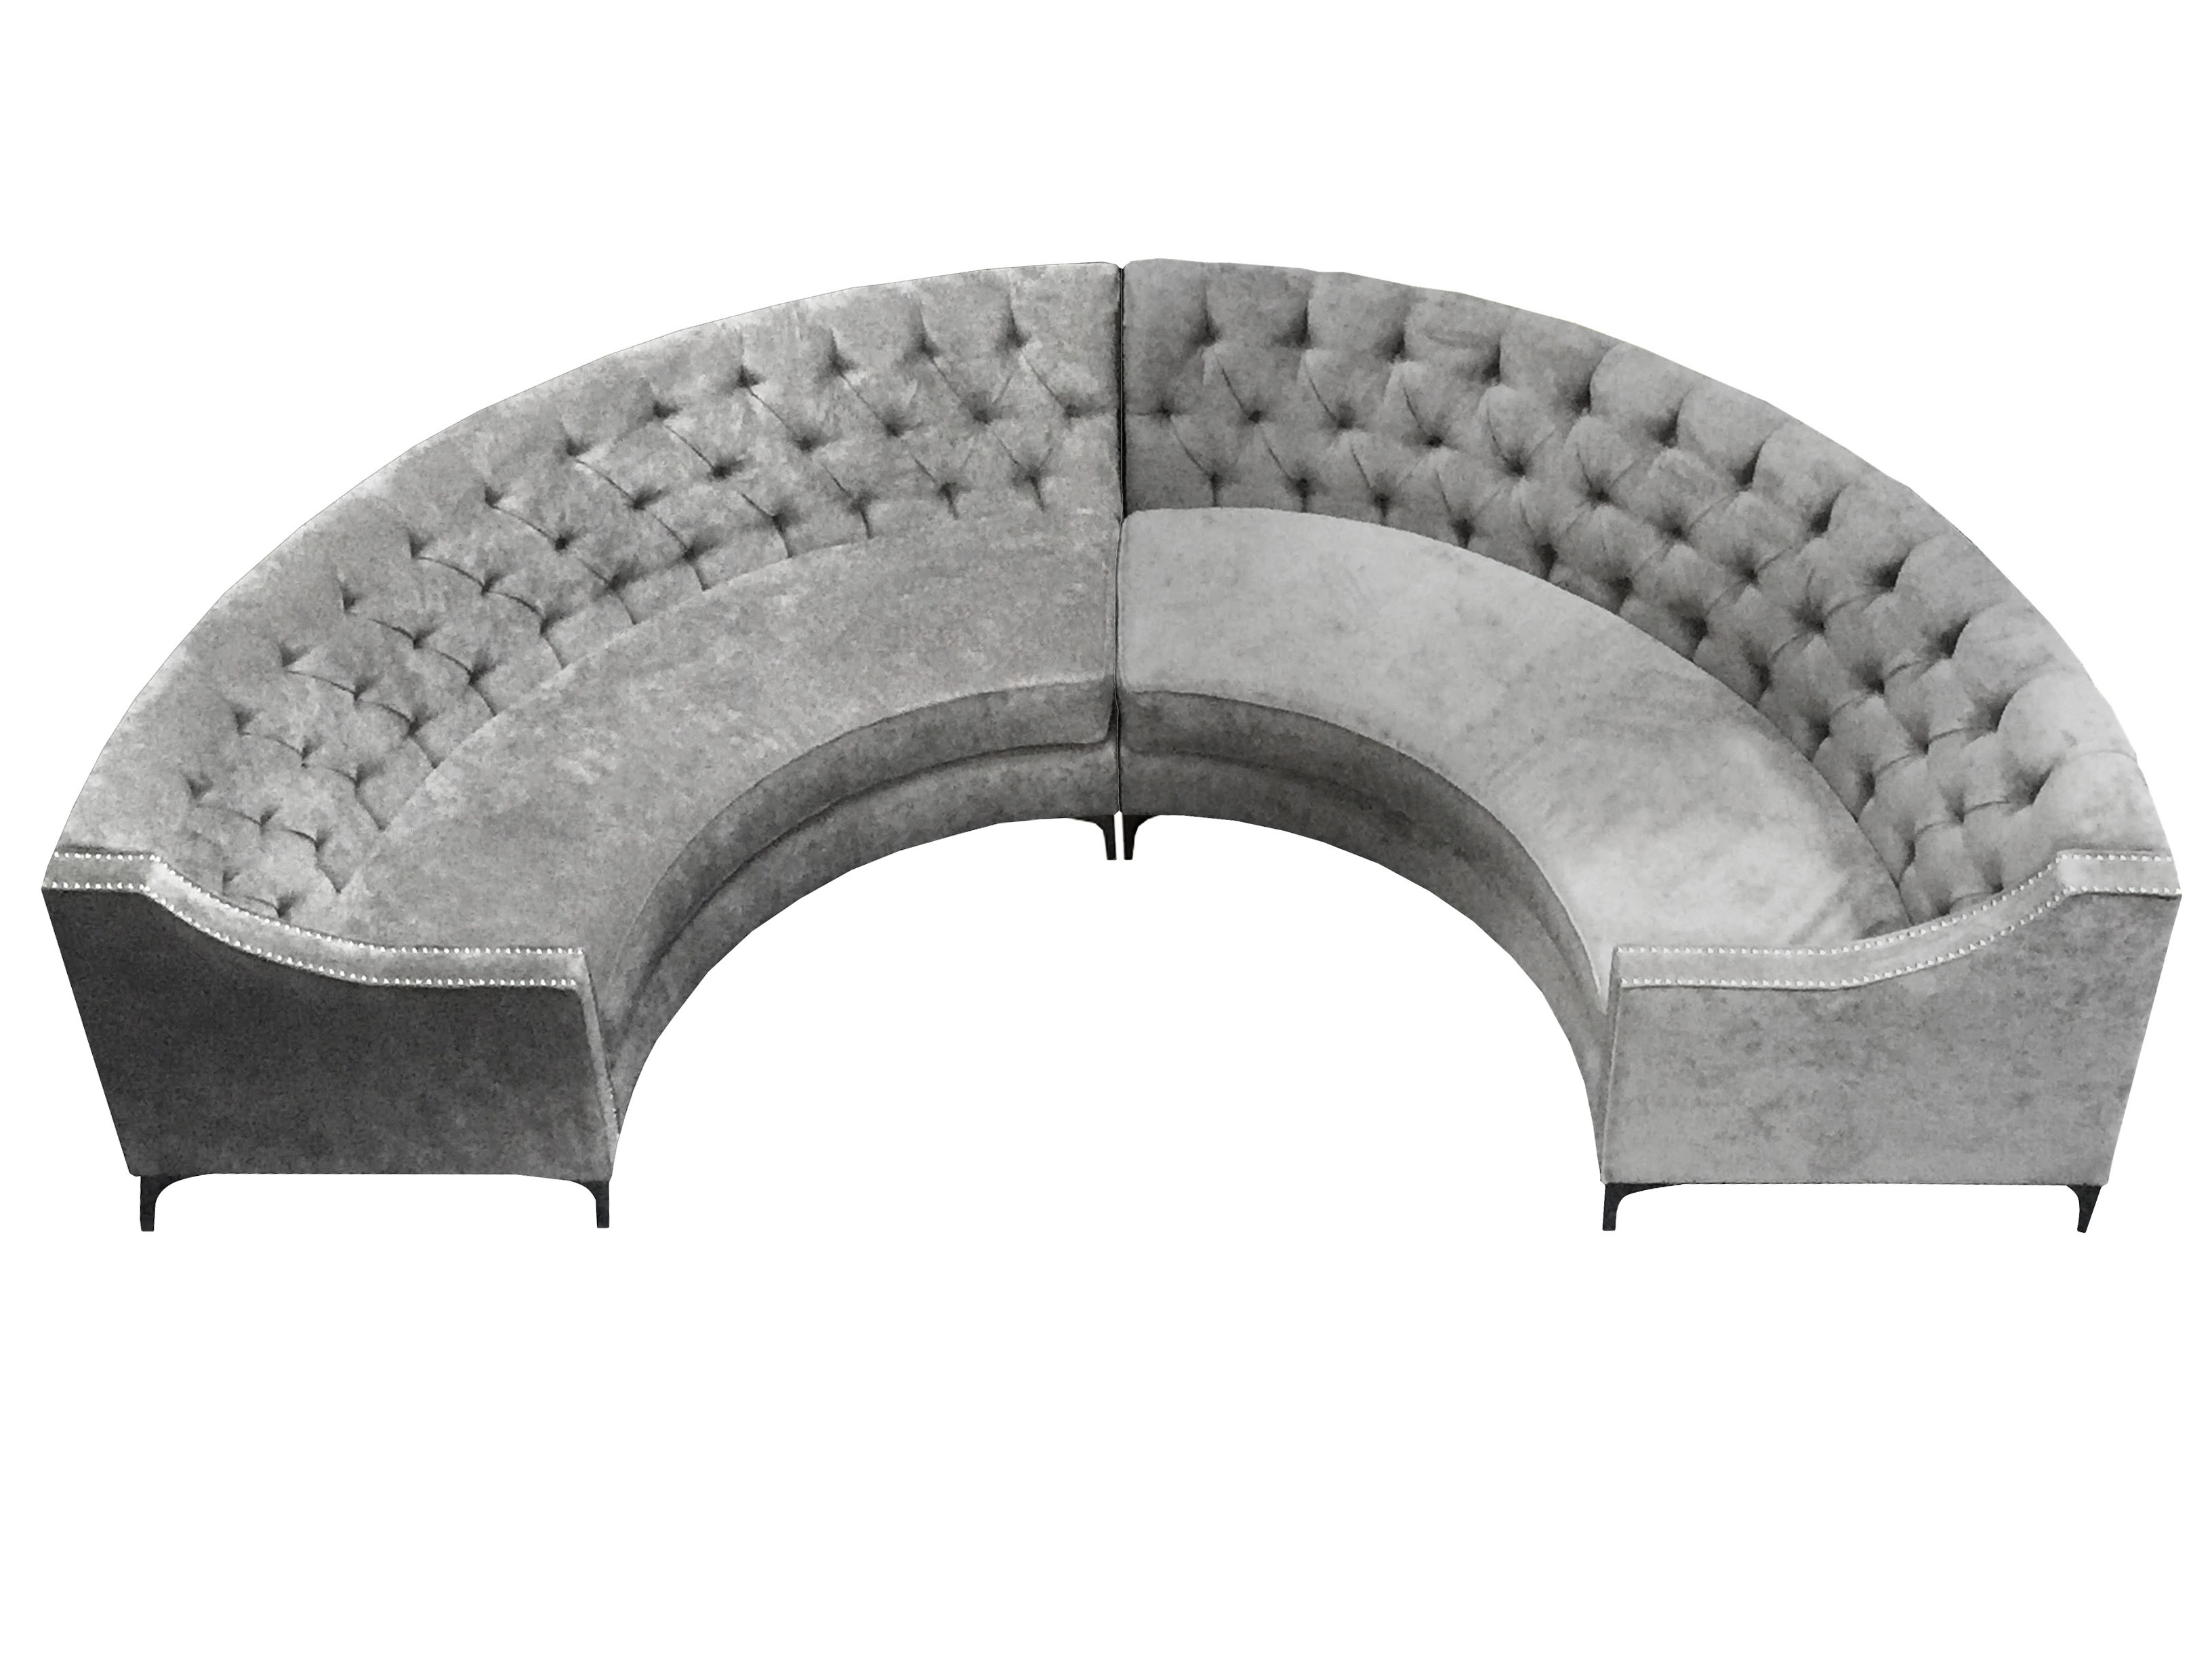 Curved banquette curved banquette bench with curved banquette curved banquette dining pfw with Curved bench seating